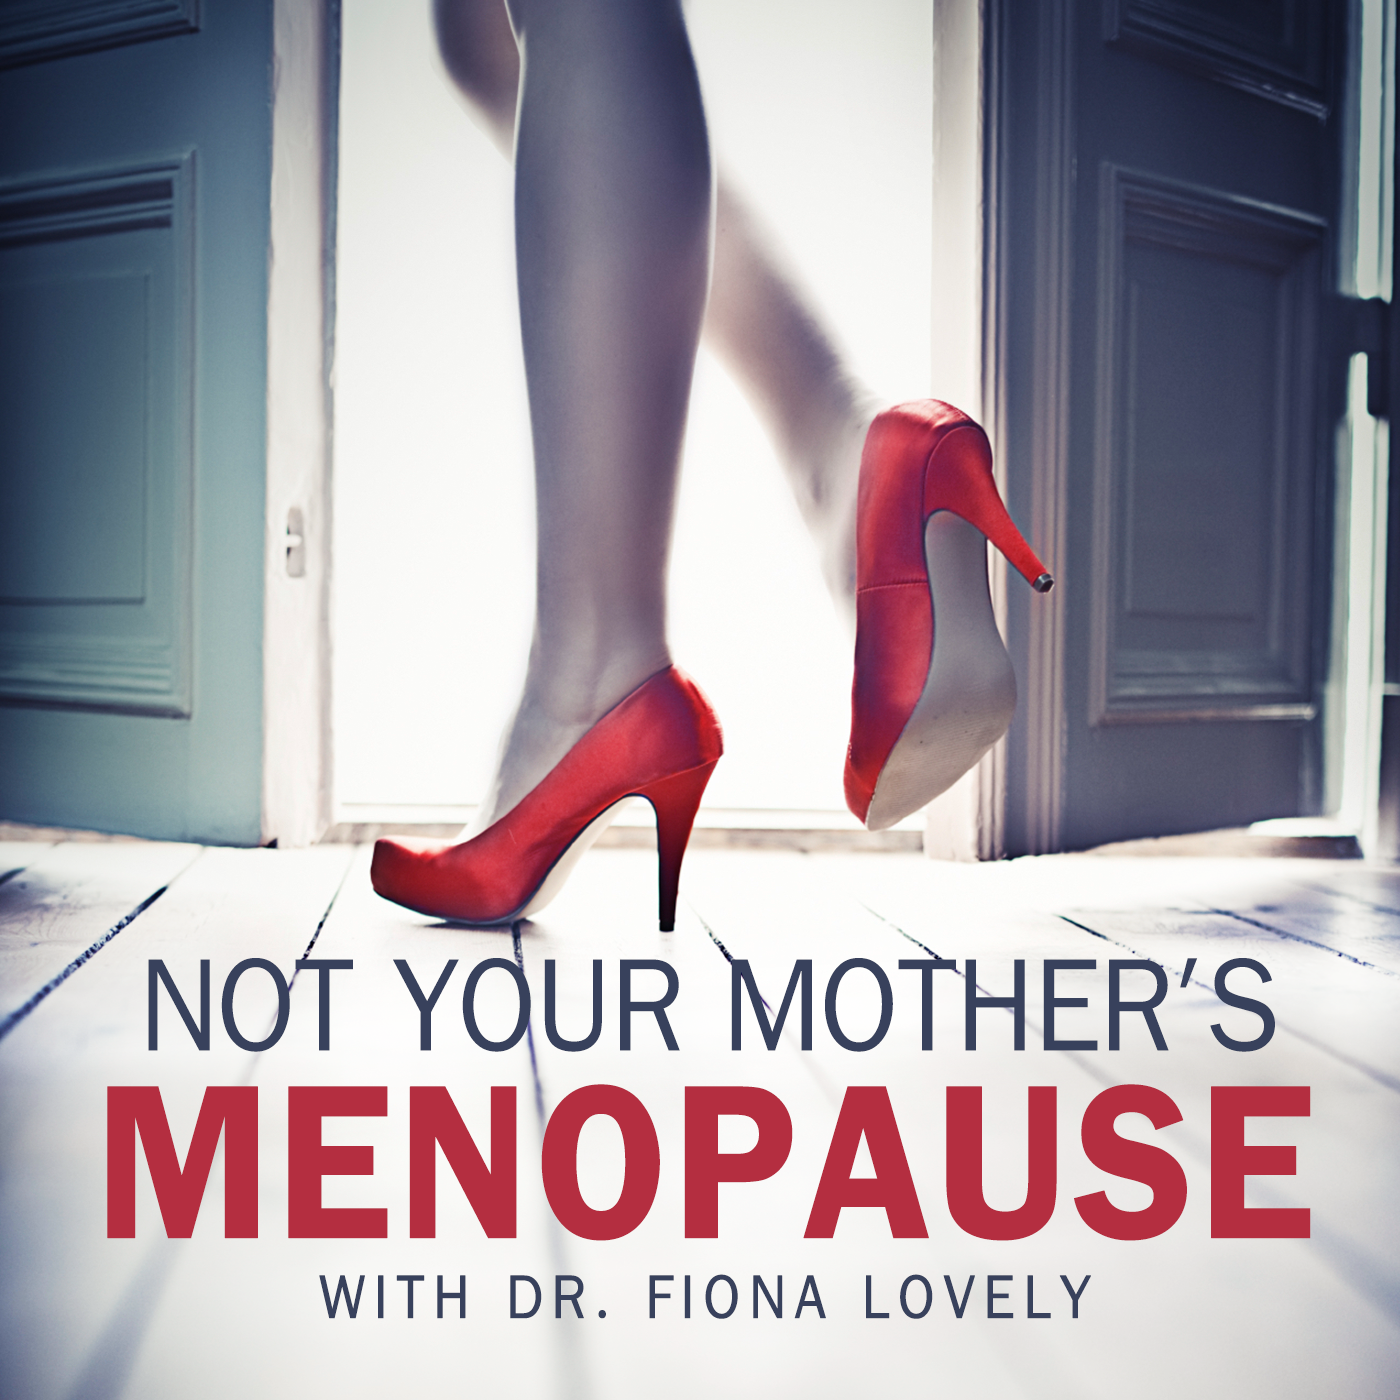 Not Your Mother's Menopause - making hormones make sense with Dr. Fiona Lovely, Ep. 06 - Thyroid 101